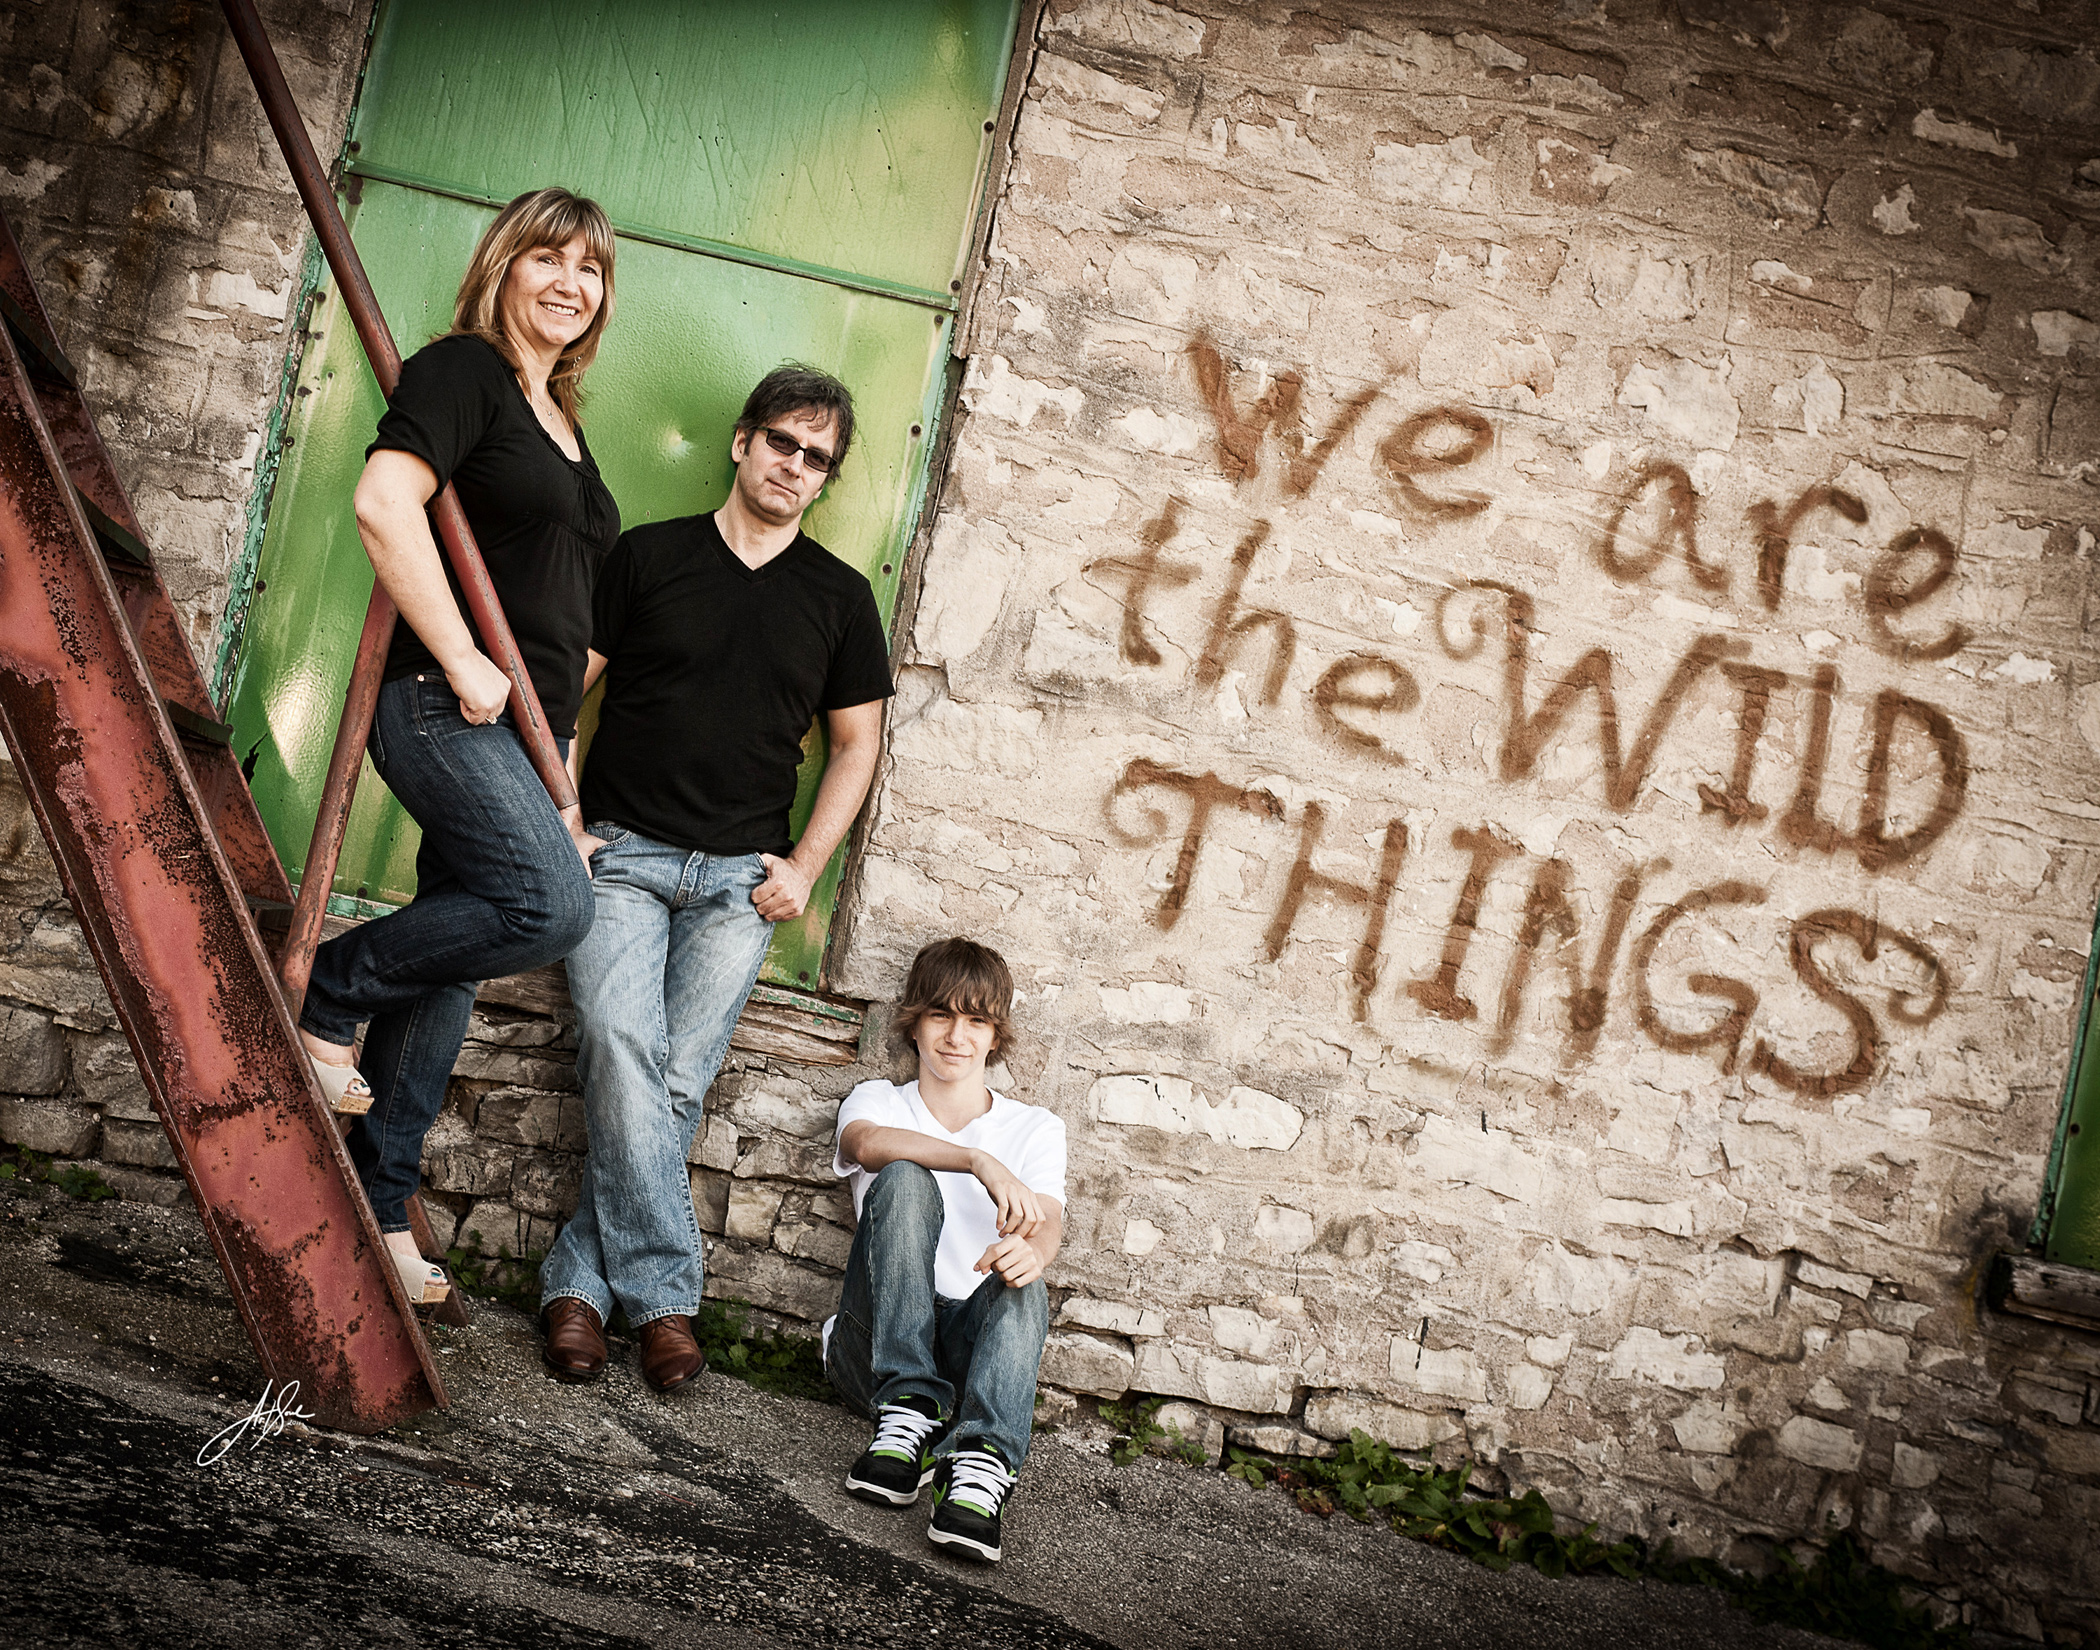 Alternative-Family-Portrait-with-Graffiti.jpg